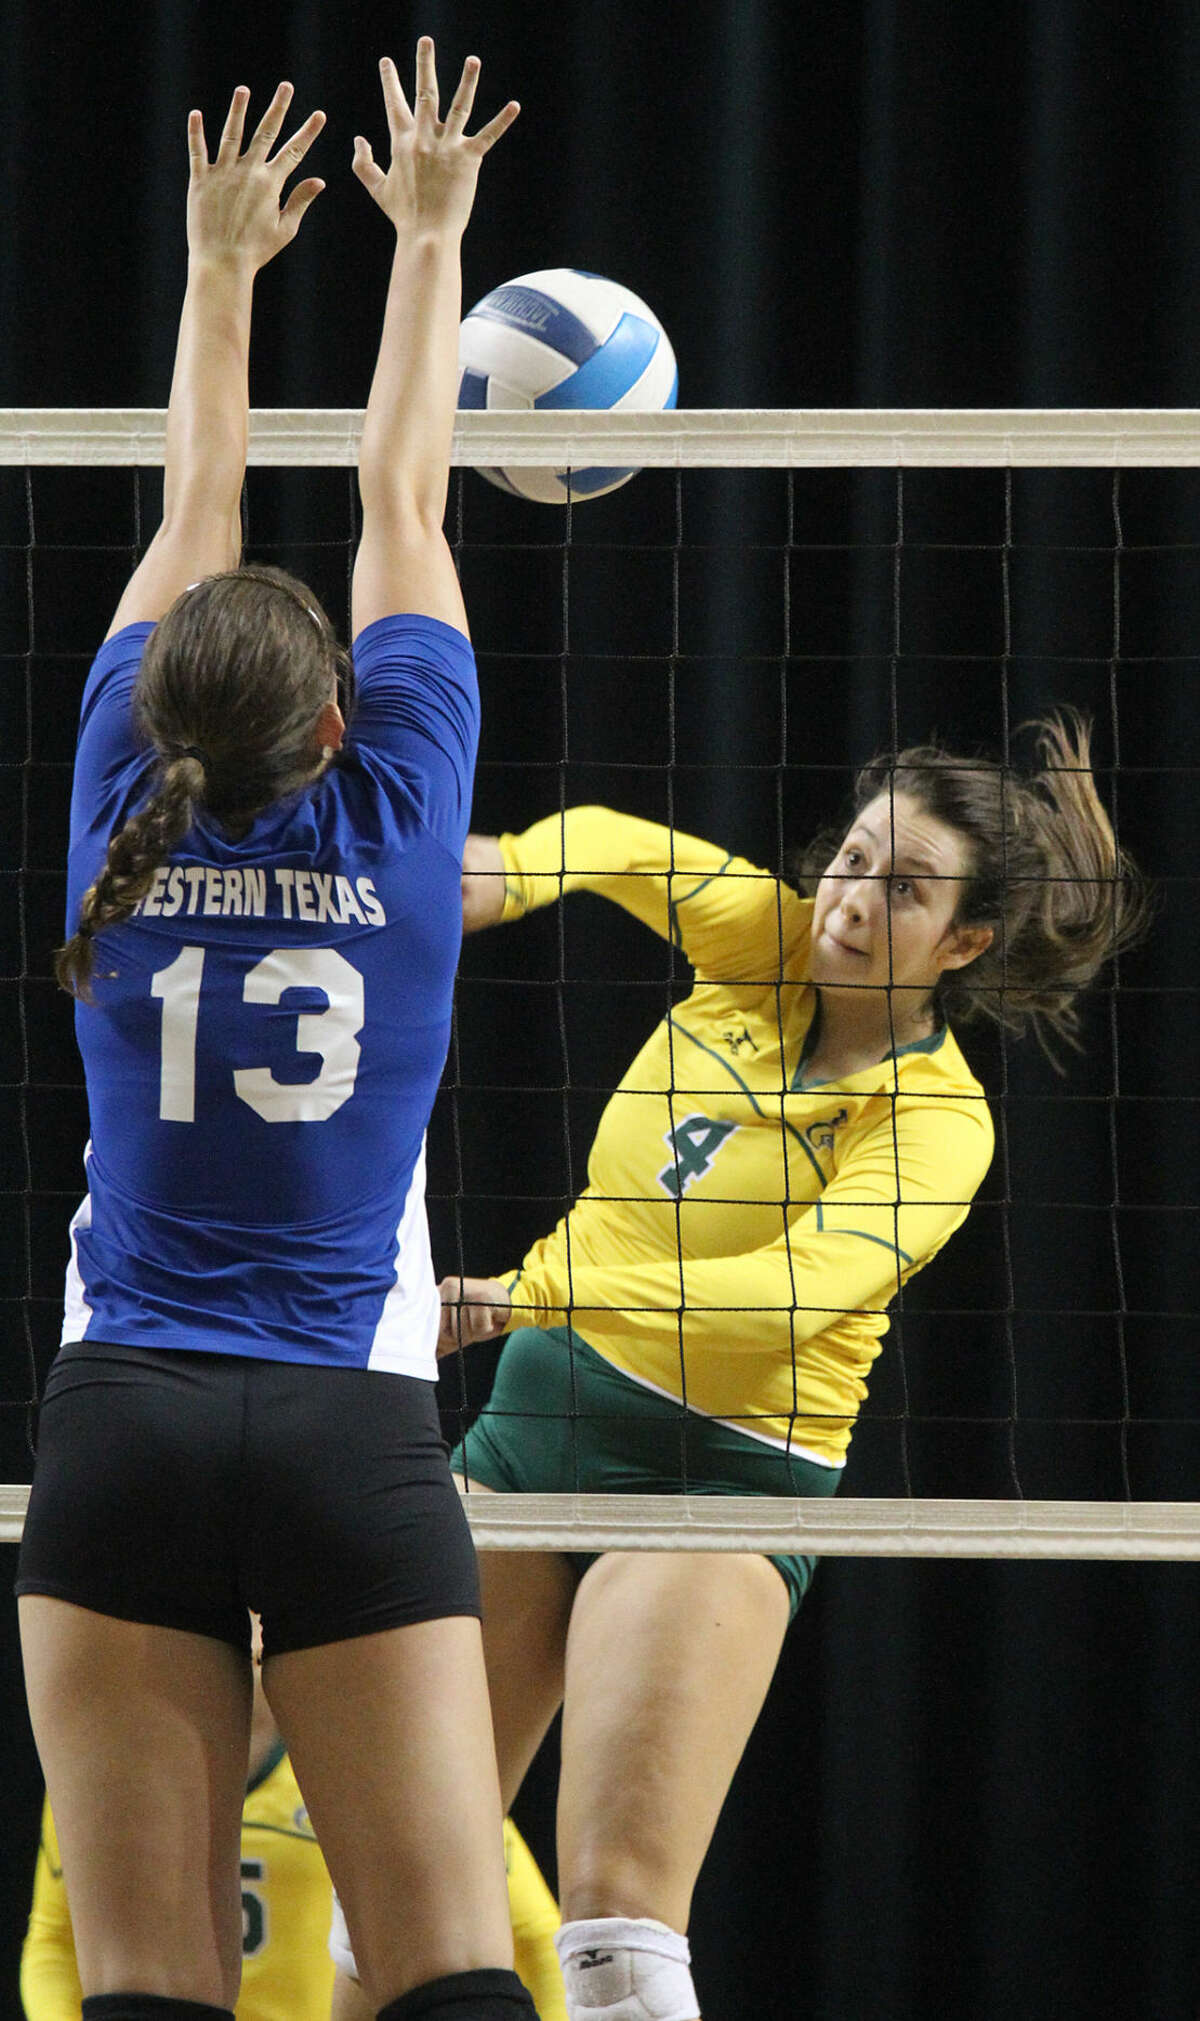 Midland College's Aleana Crow (4) hits against Western Texas College's Anamaurie Perkins (13) on Wednesday, Sept. 23, 2015 at Chaparral Center. James Durbin/Reporter-Telegram